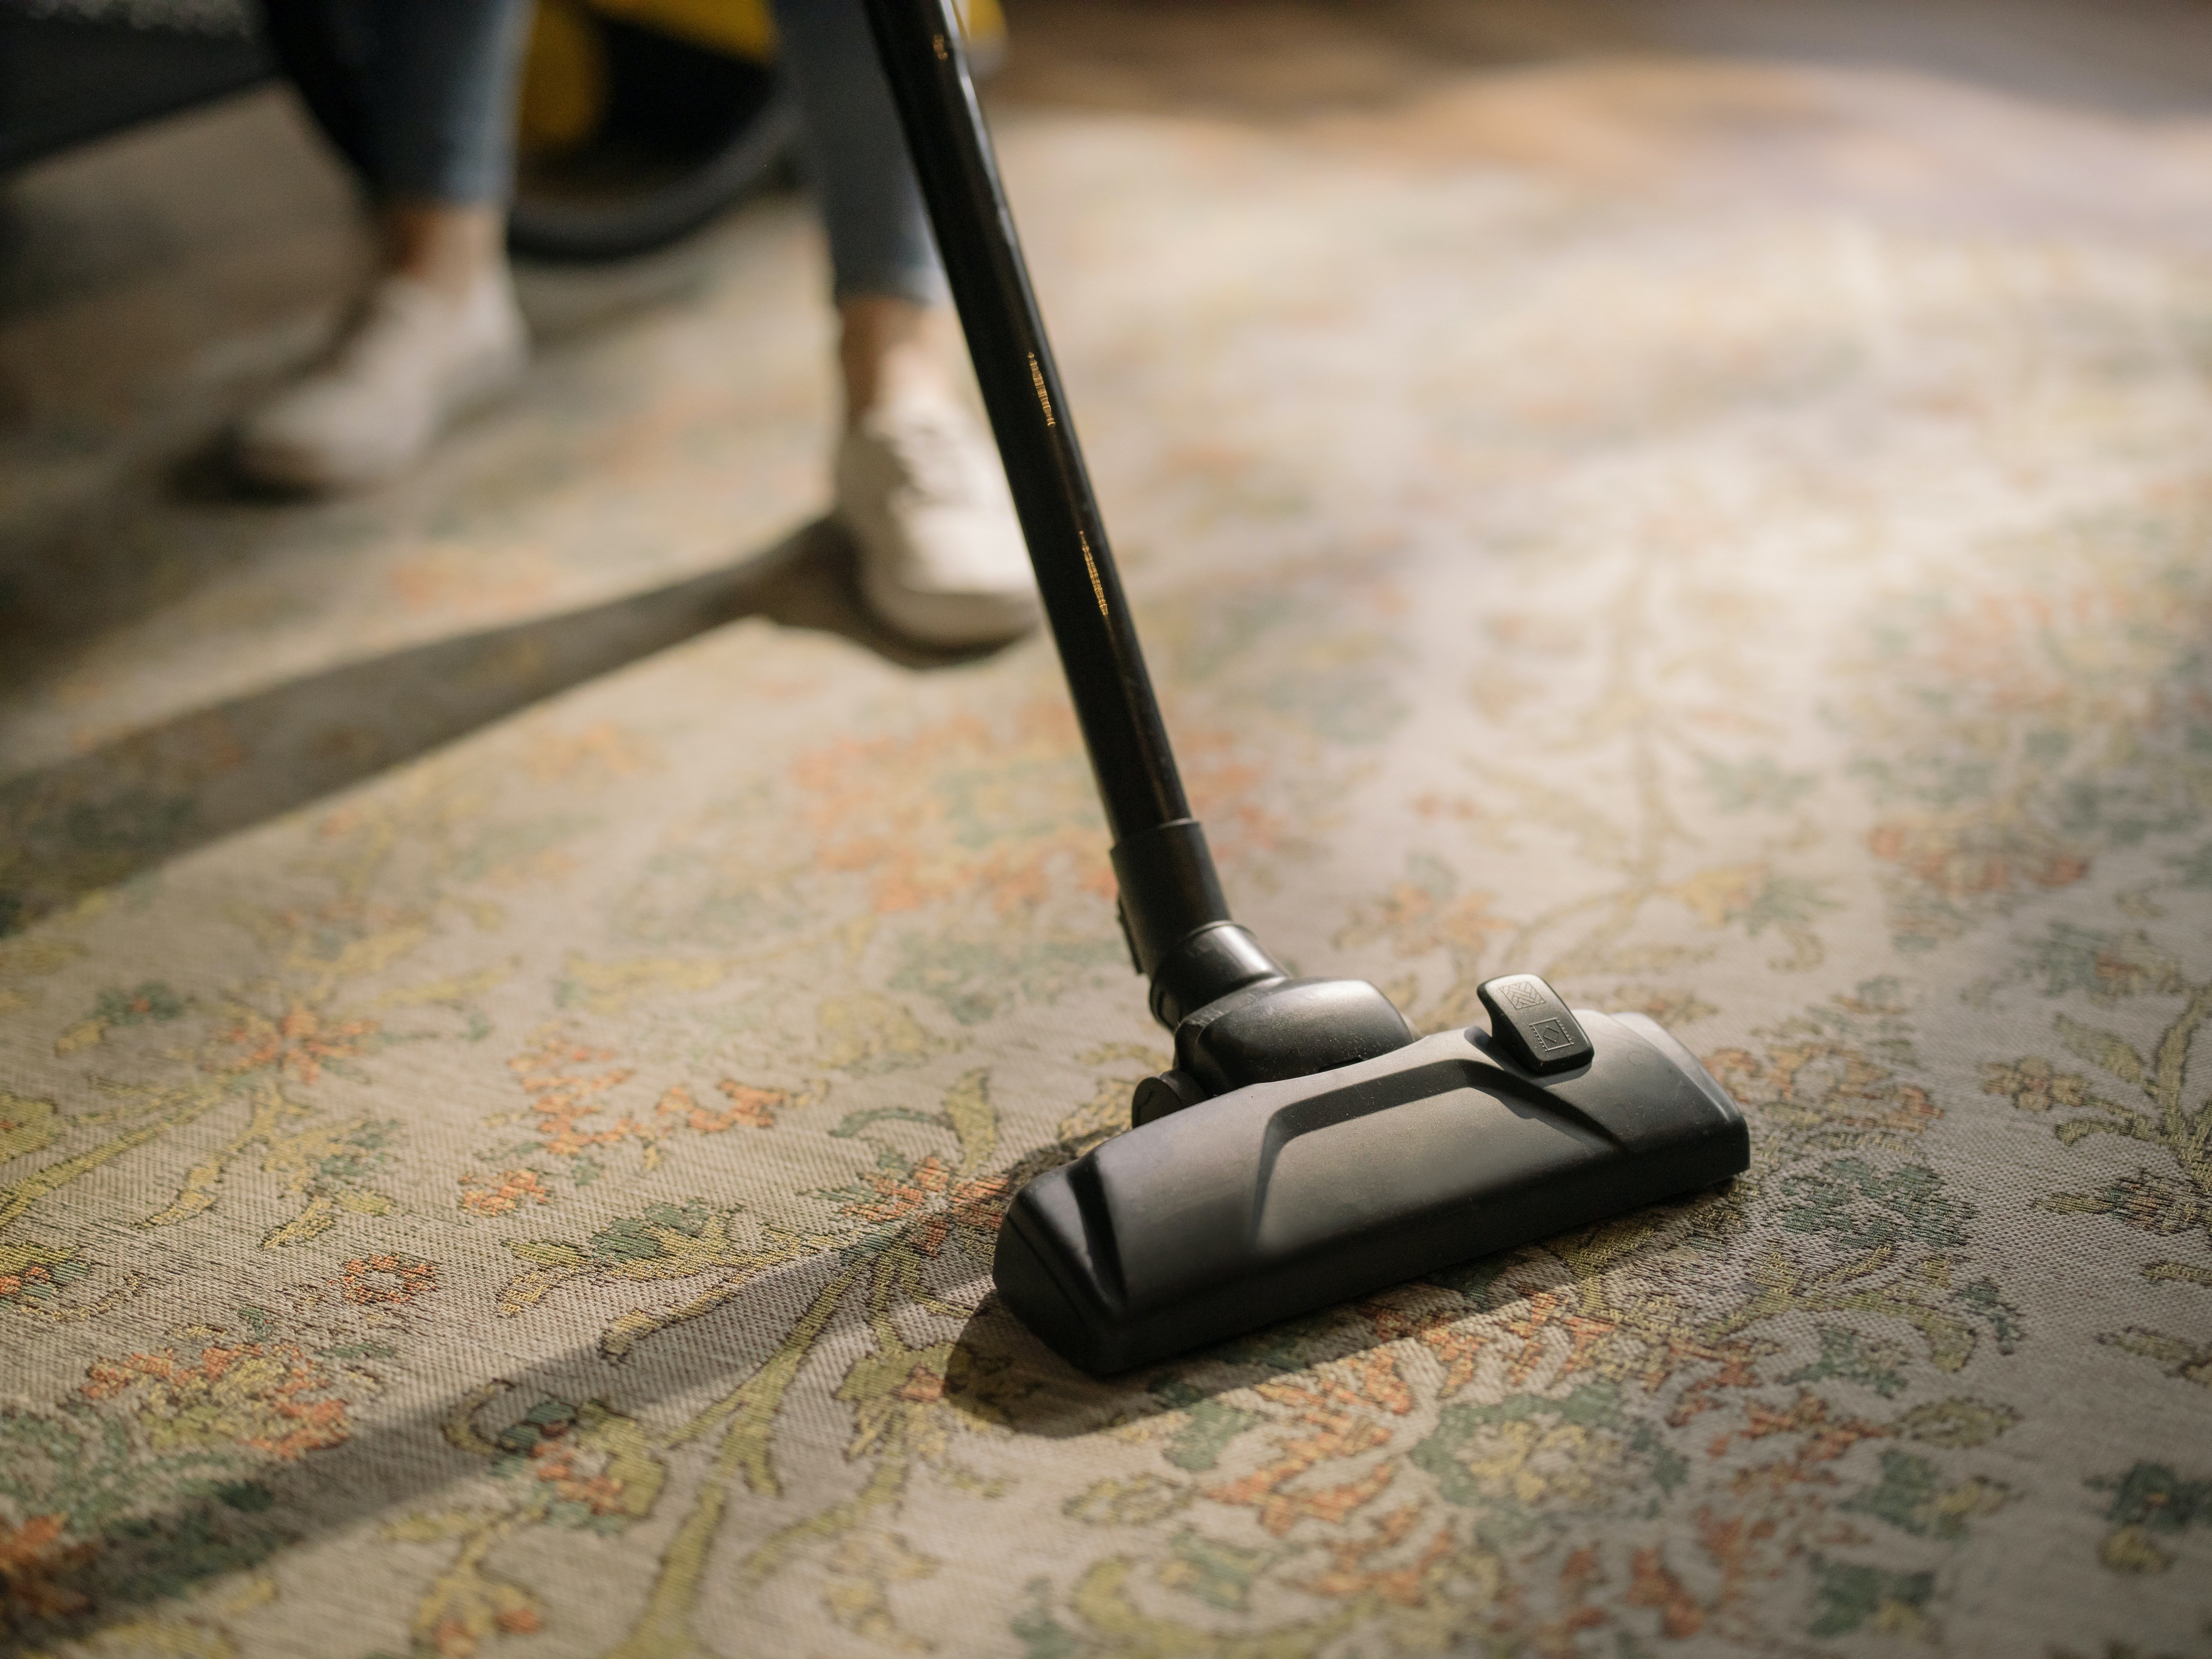 A vacuum cleaner on a carpet. | Photo: Pexels